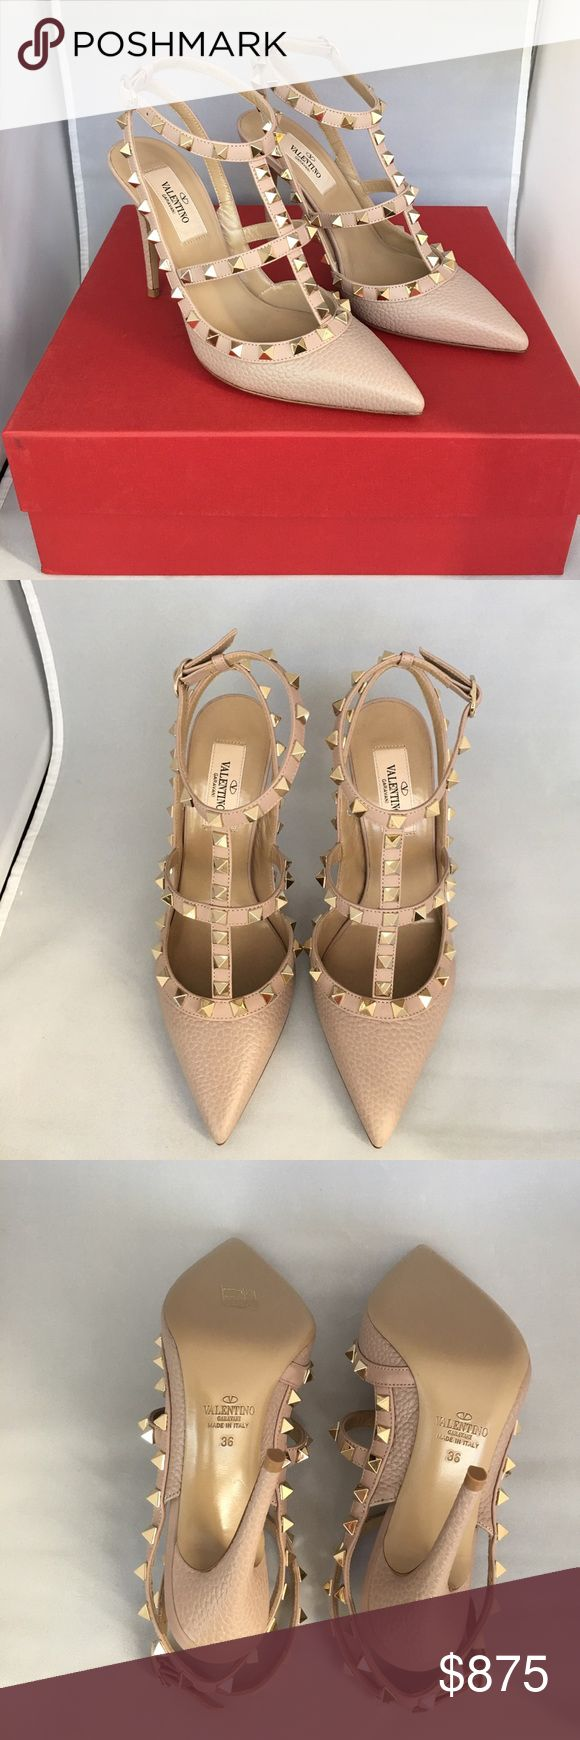 Valentino Rockstud Heels, Sz 6/36, Taupe/Nude 100% authentic and brand new with box. Valentino's 'Rockstud' pumps are equal parts elegant and edgy. Coated in nude grained leather, this studded pair work for days and evenings alike. Wear with distressed denim to dress up an off-duty look. Valentino Shoes Heels